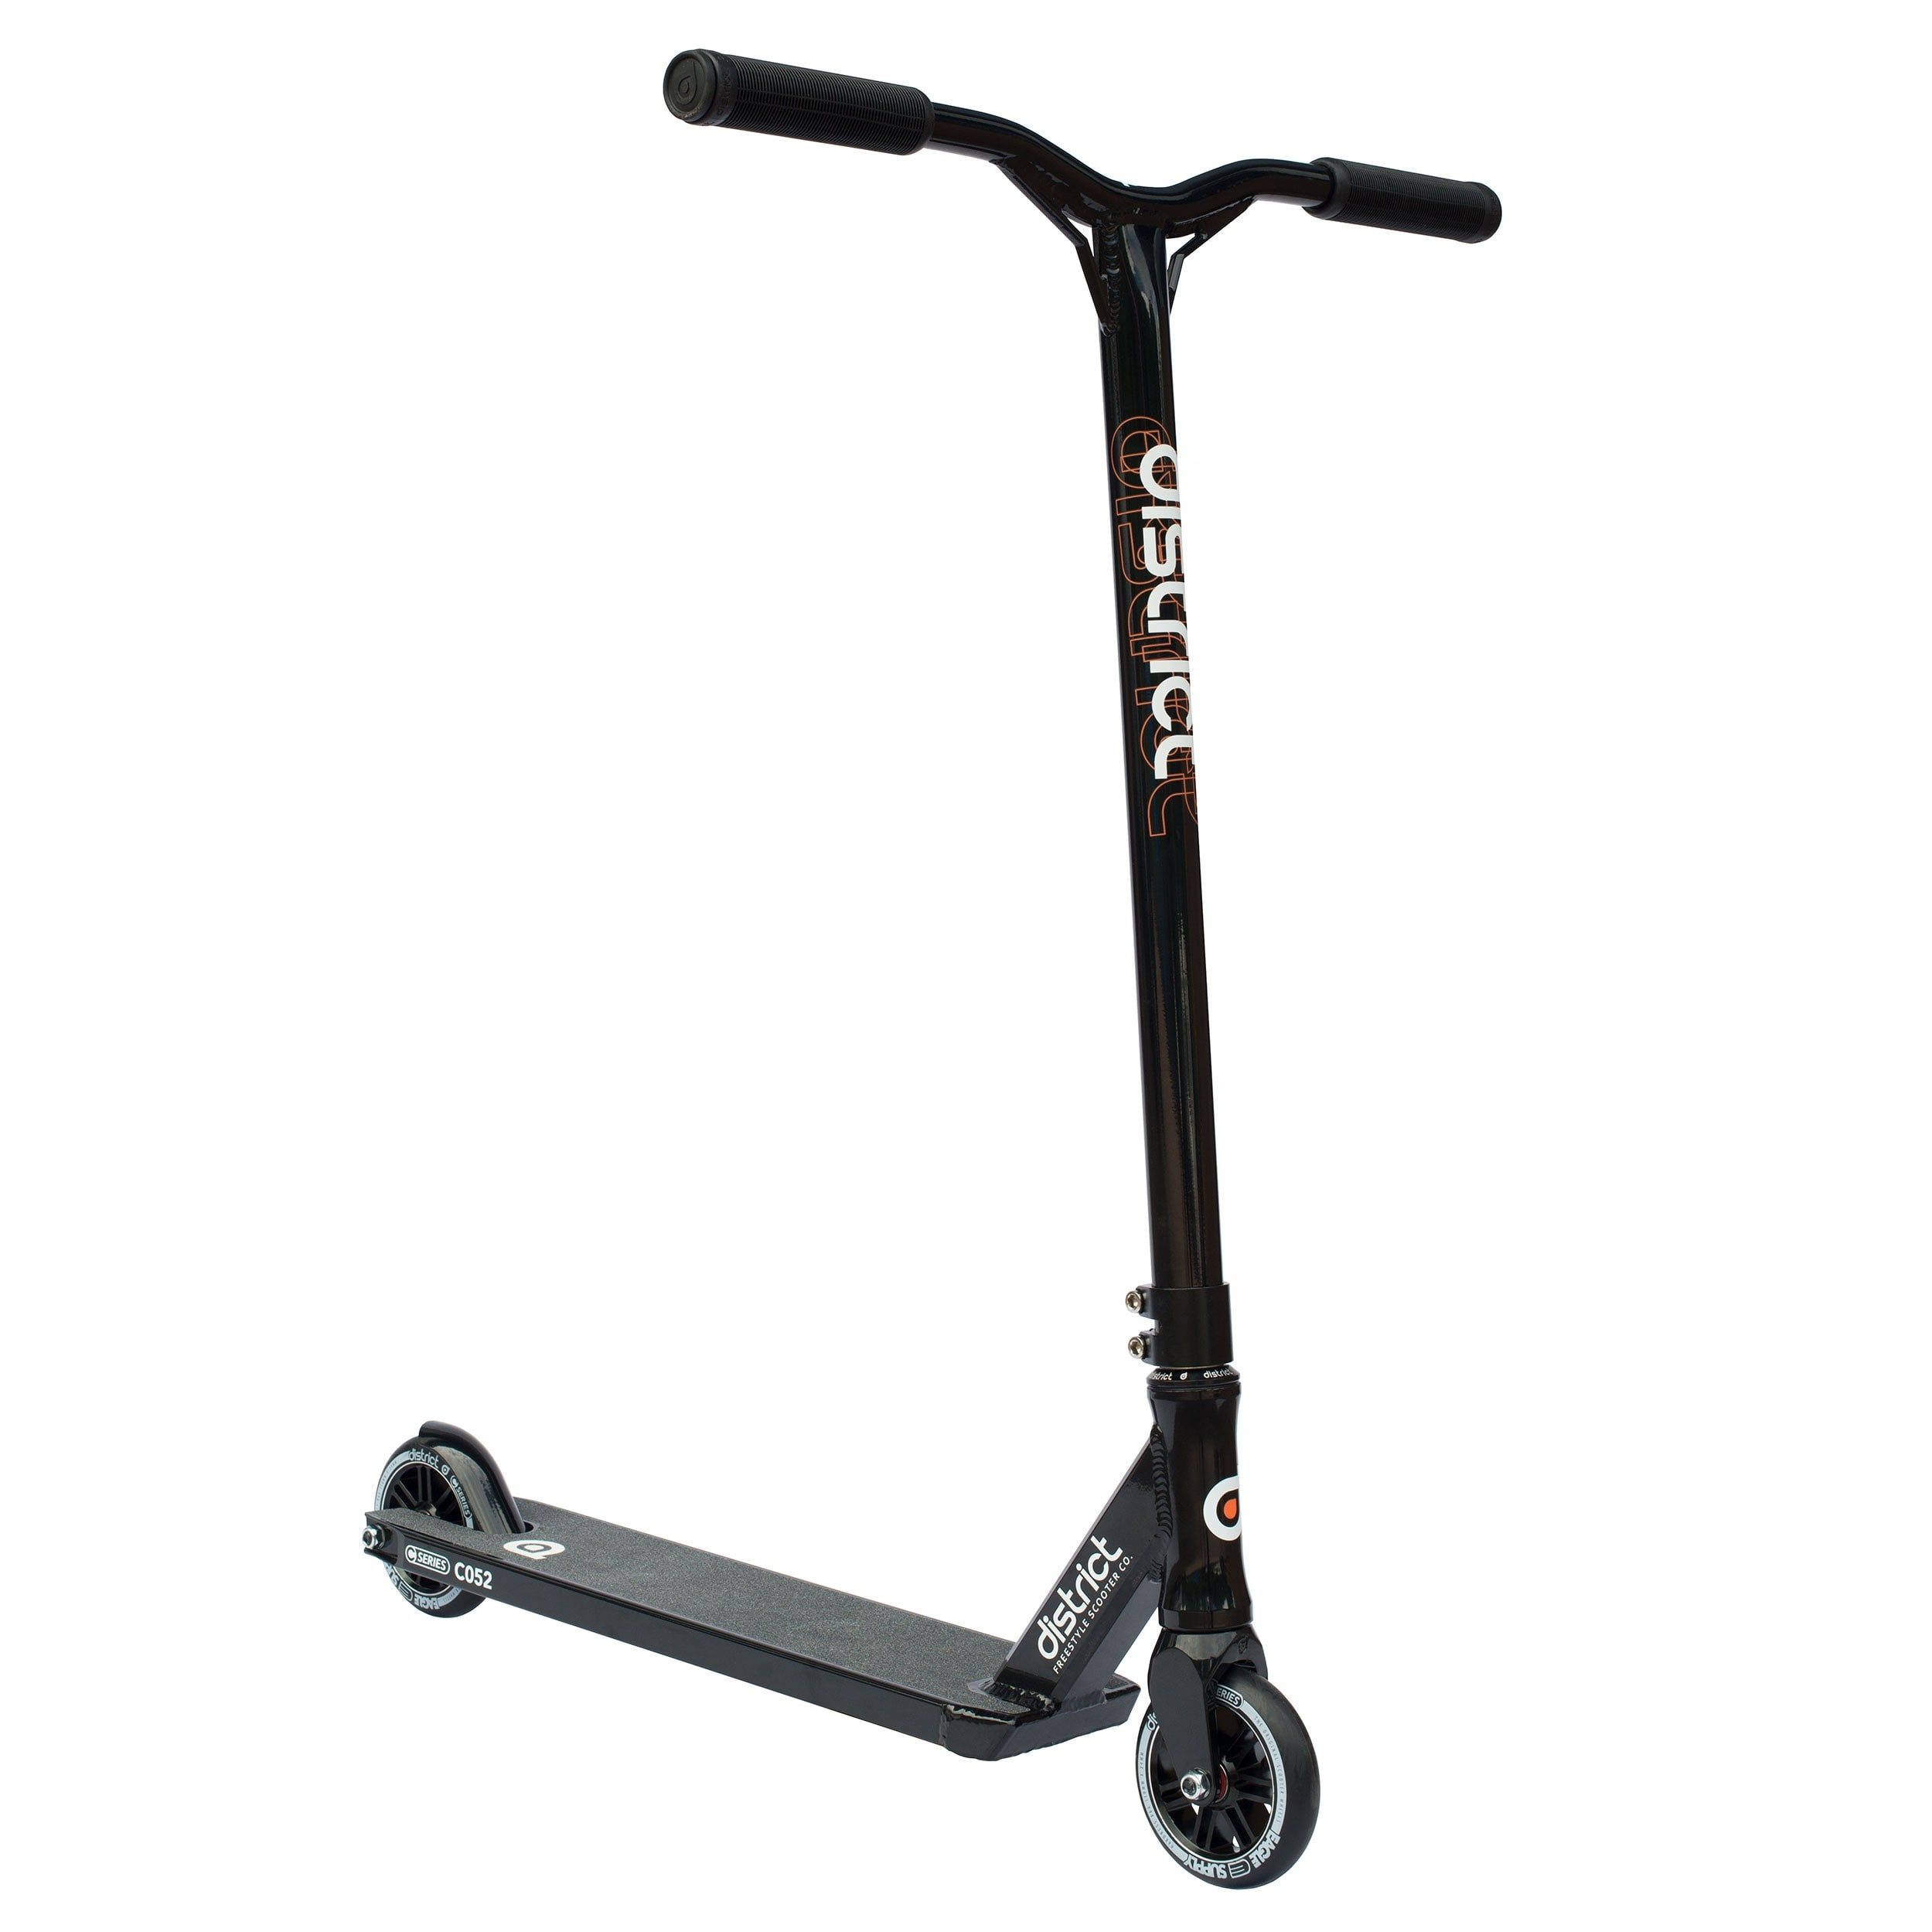 Image of District 2017 C-Series C052 Complete Scooter - Black/Black